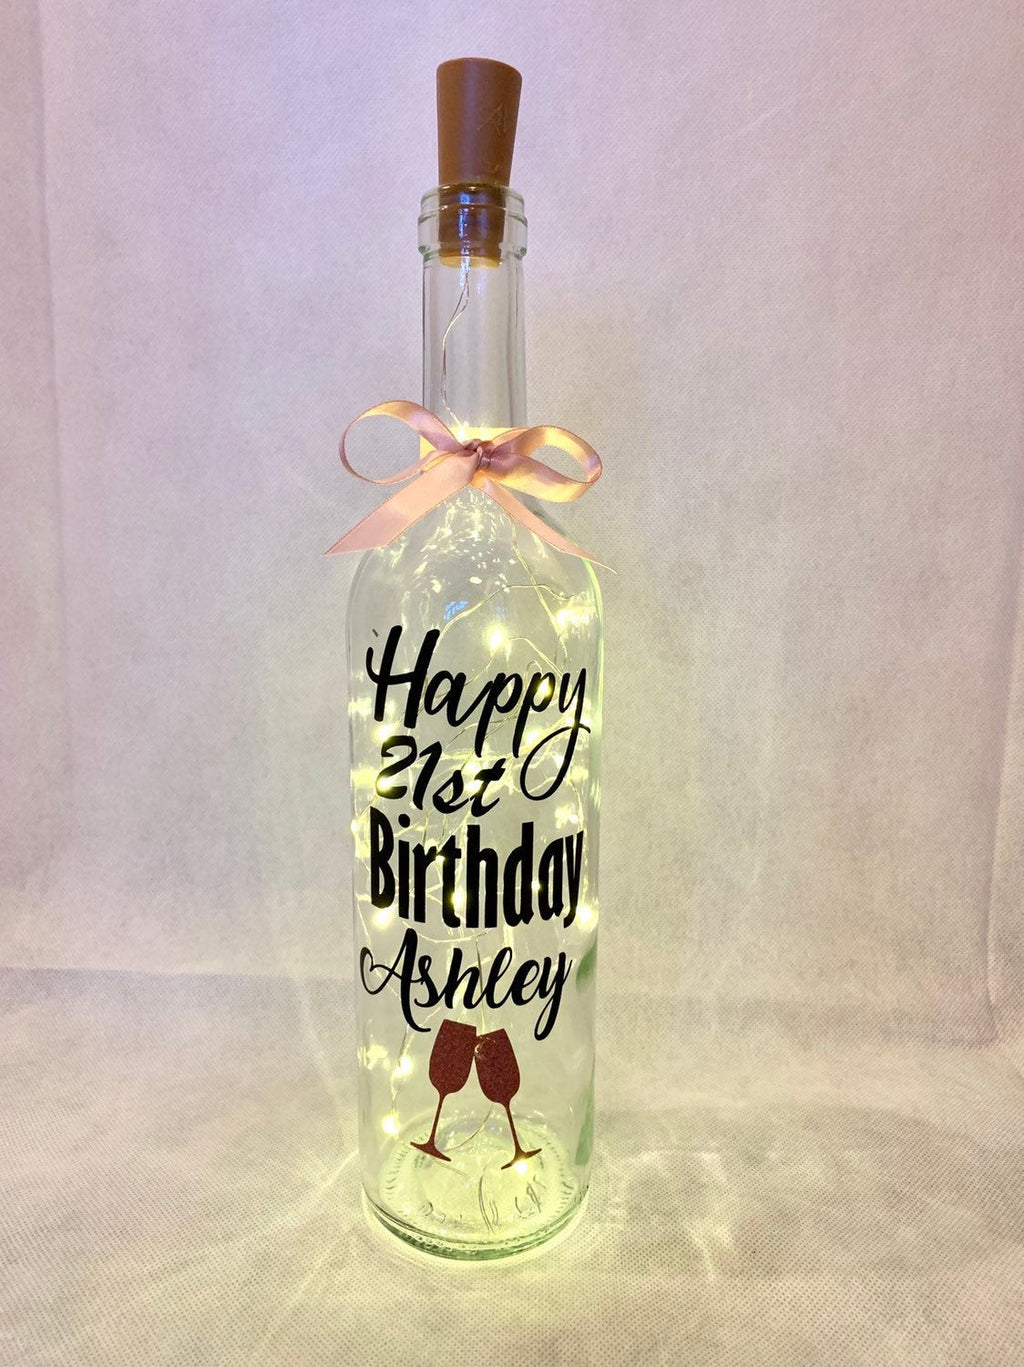 21st birthday wine bottle light